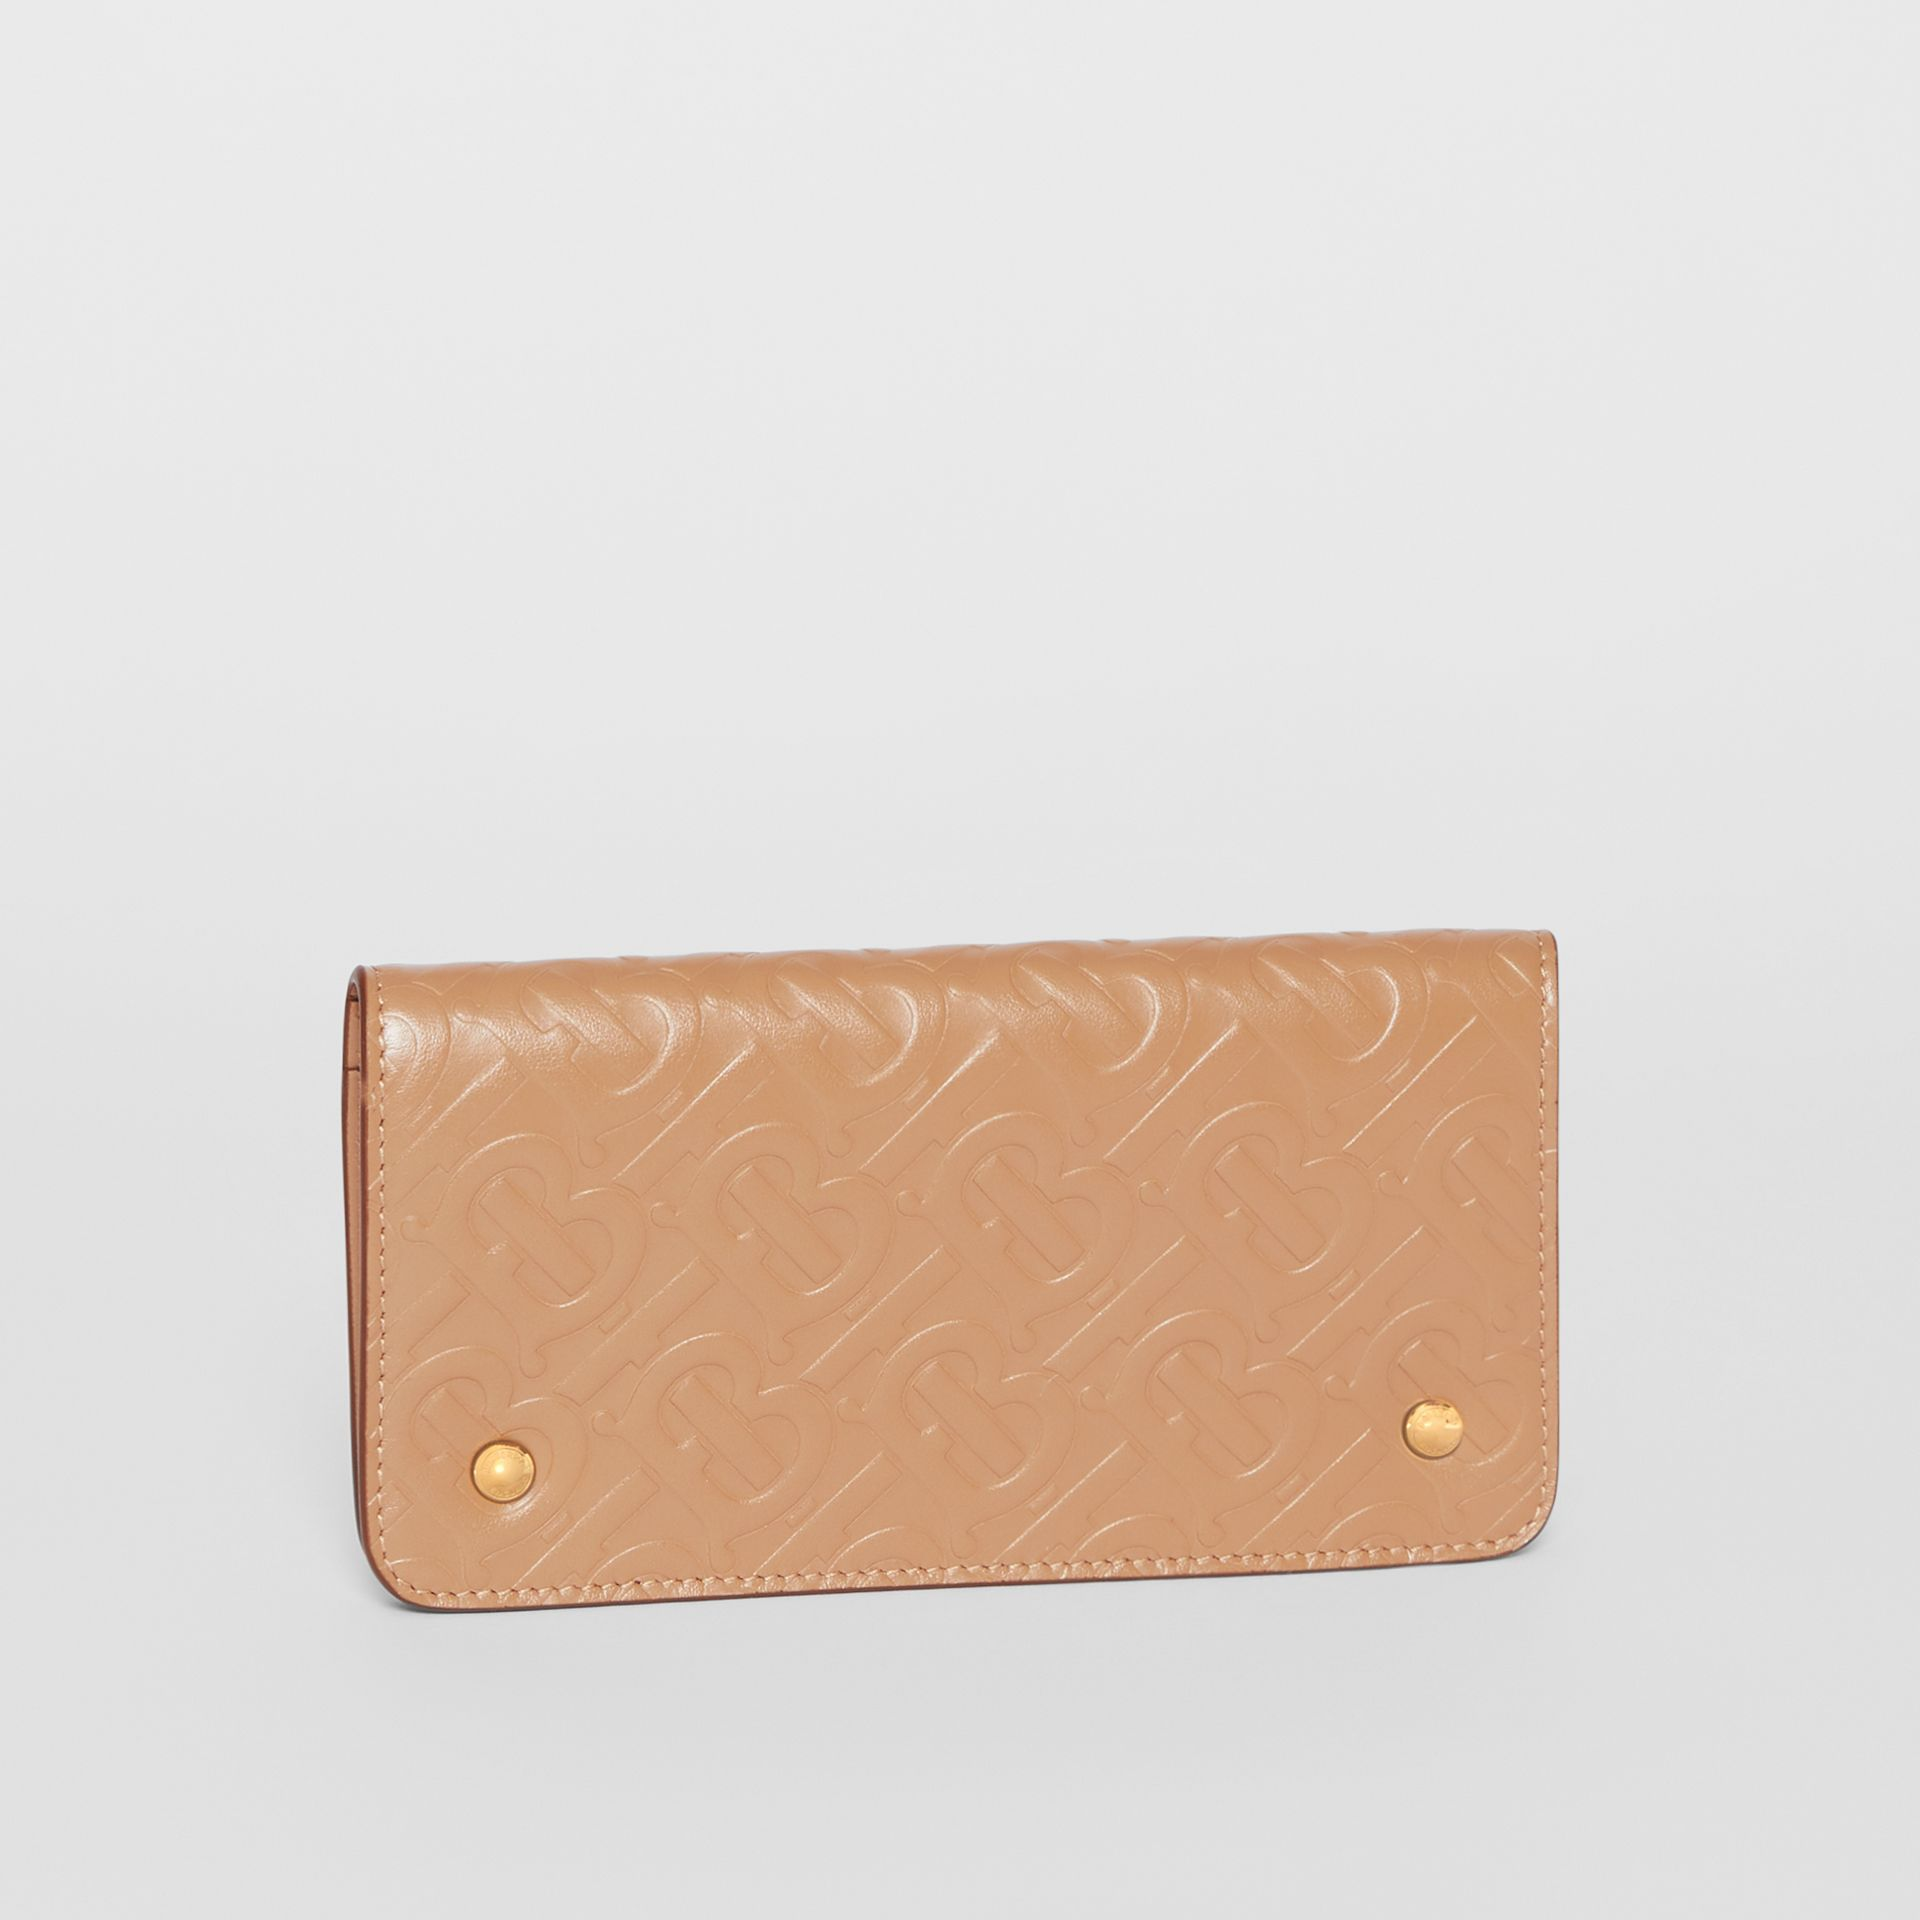 Monogram Leather Phone Wallet in Light Camel | Burberry - gallery image 4